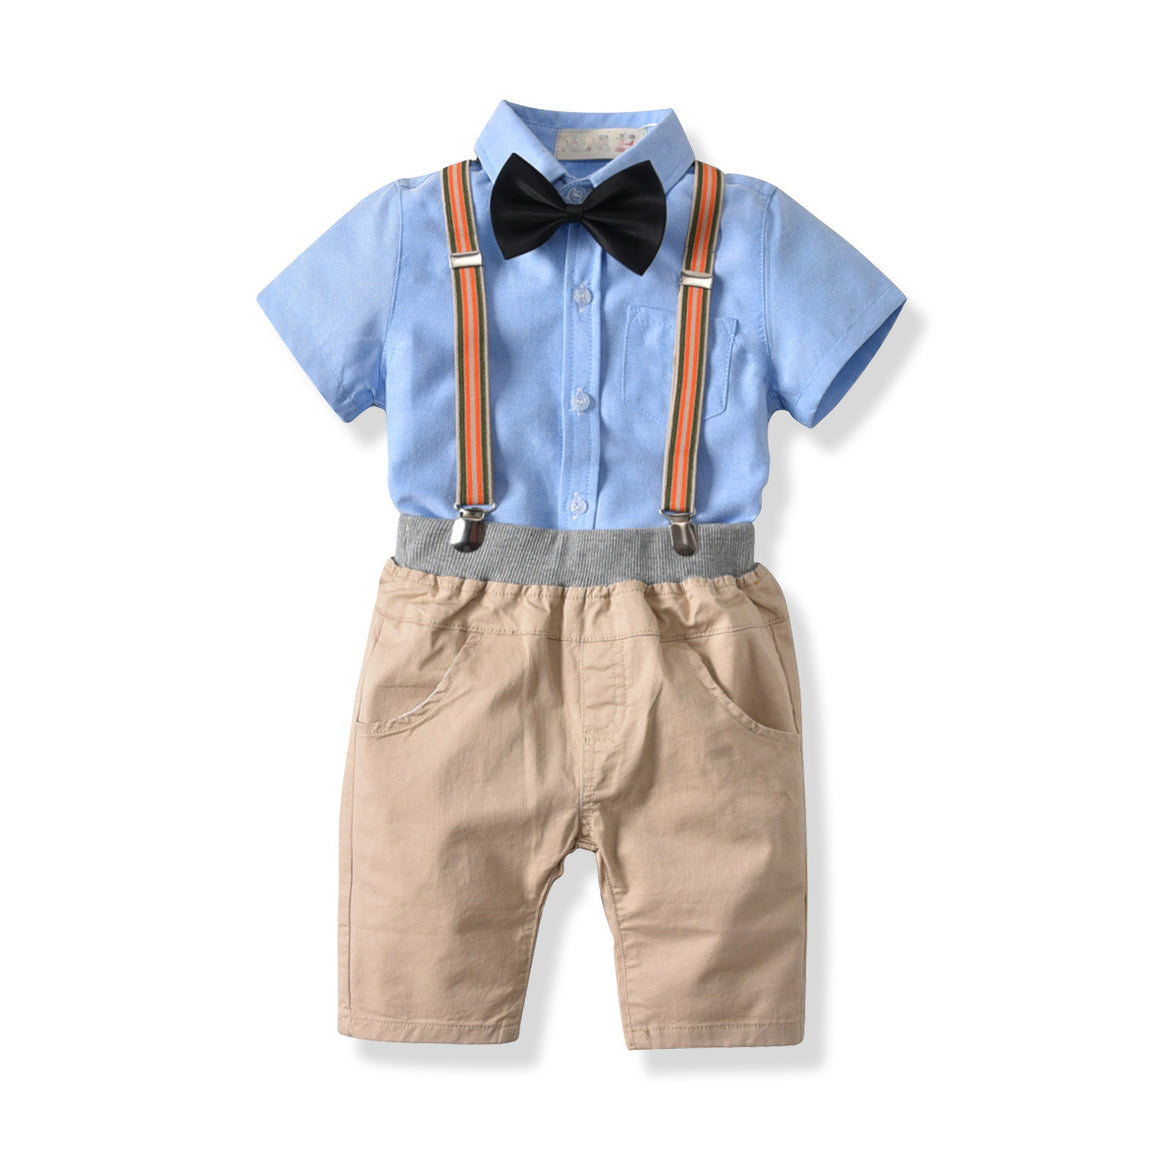 children's clothing summer pure cotton boy short-sleeved shirt shorts